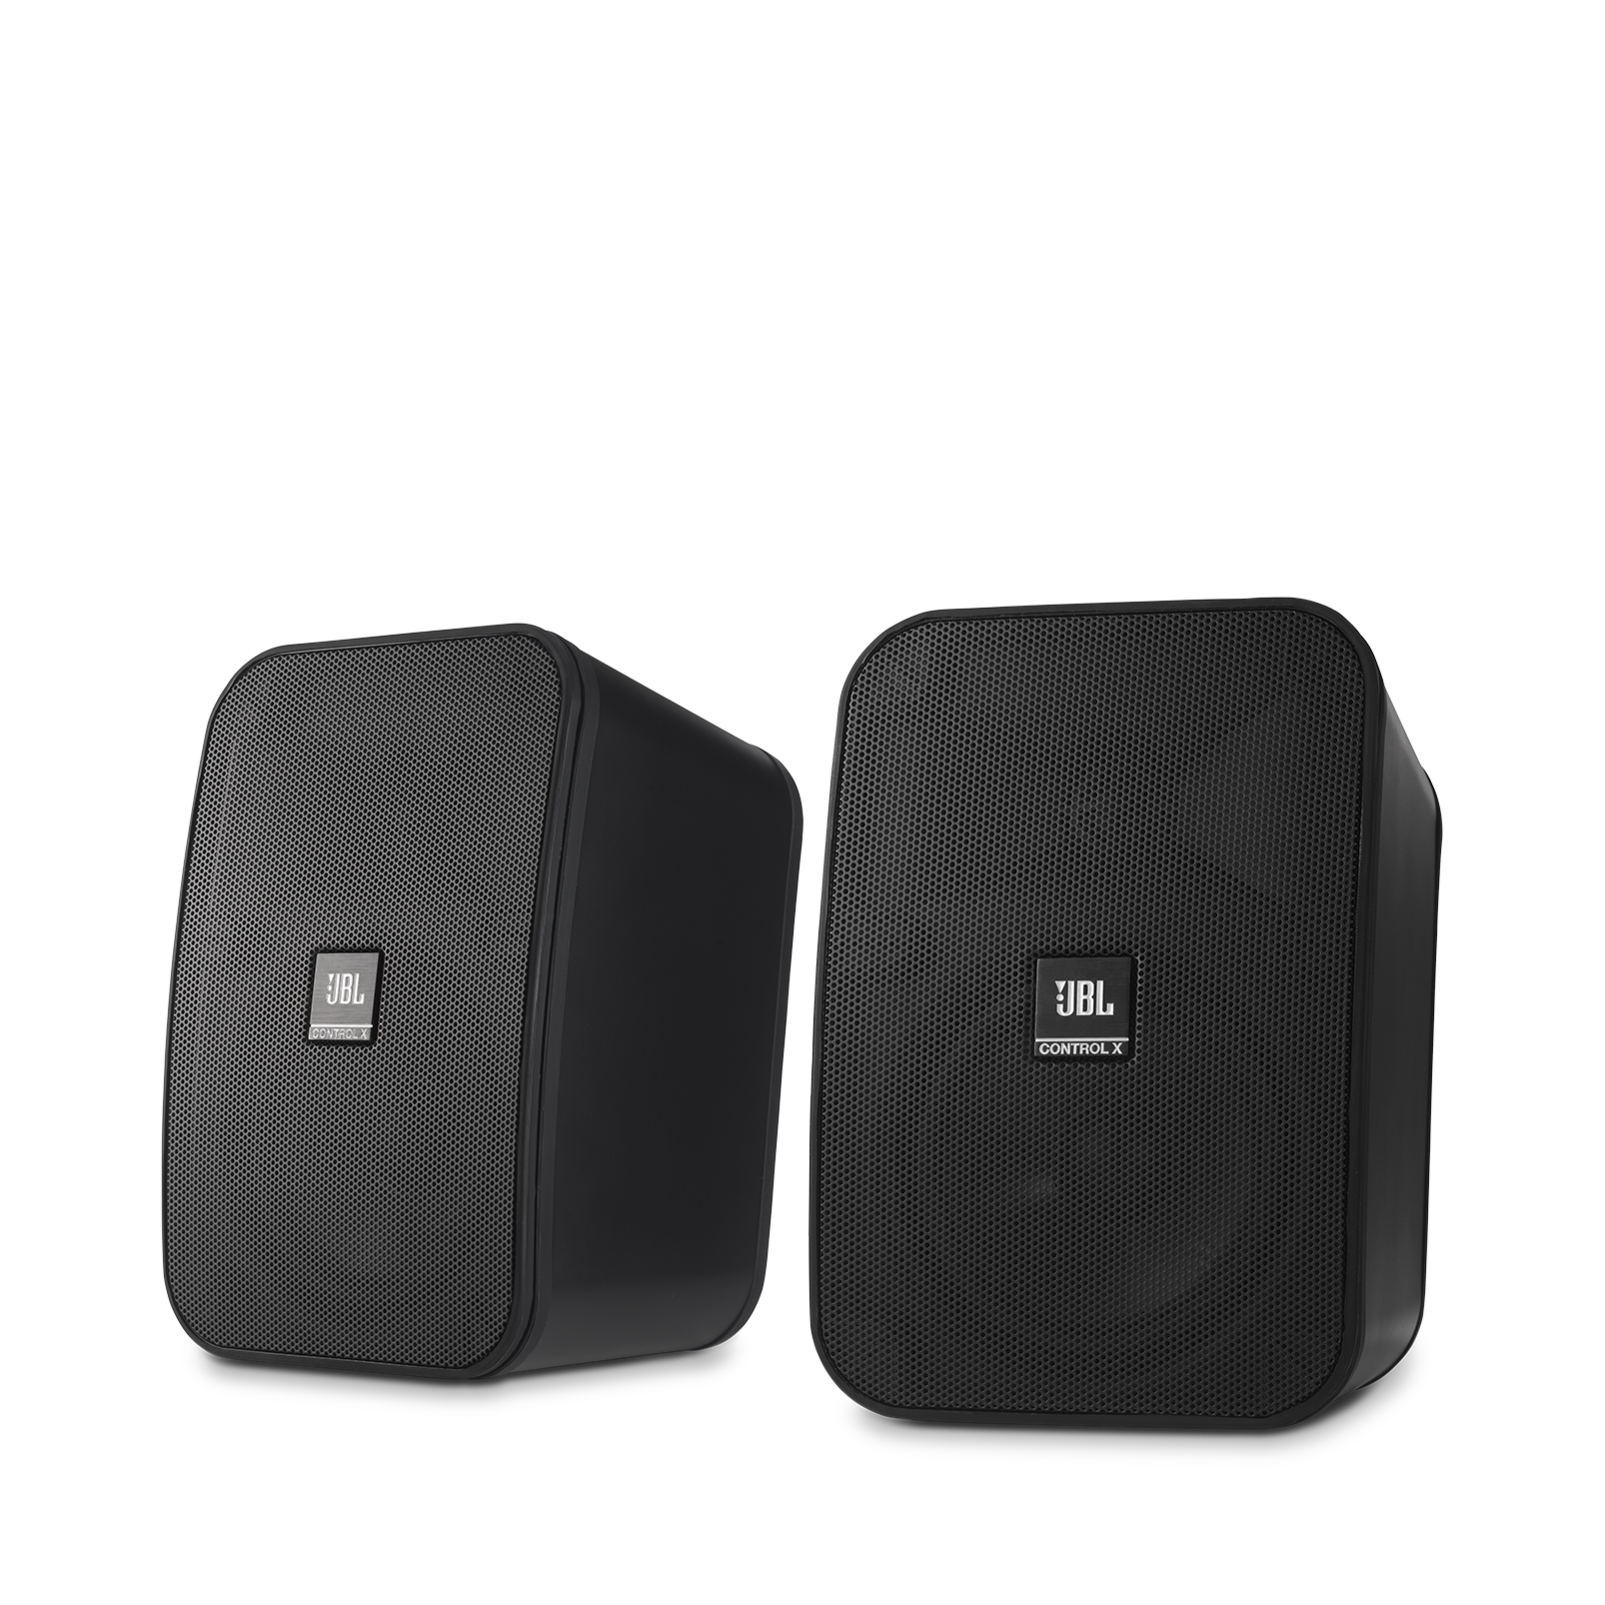 jbl control x all weather speakers. Black Bedroom Furniture Sets. Home Design Ideas